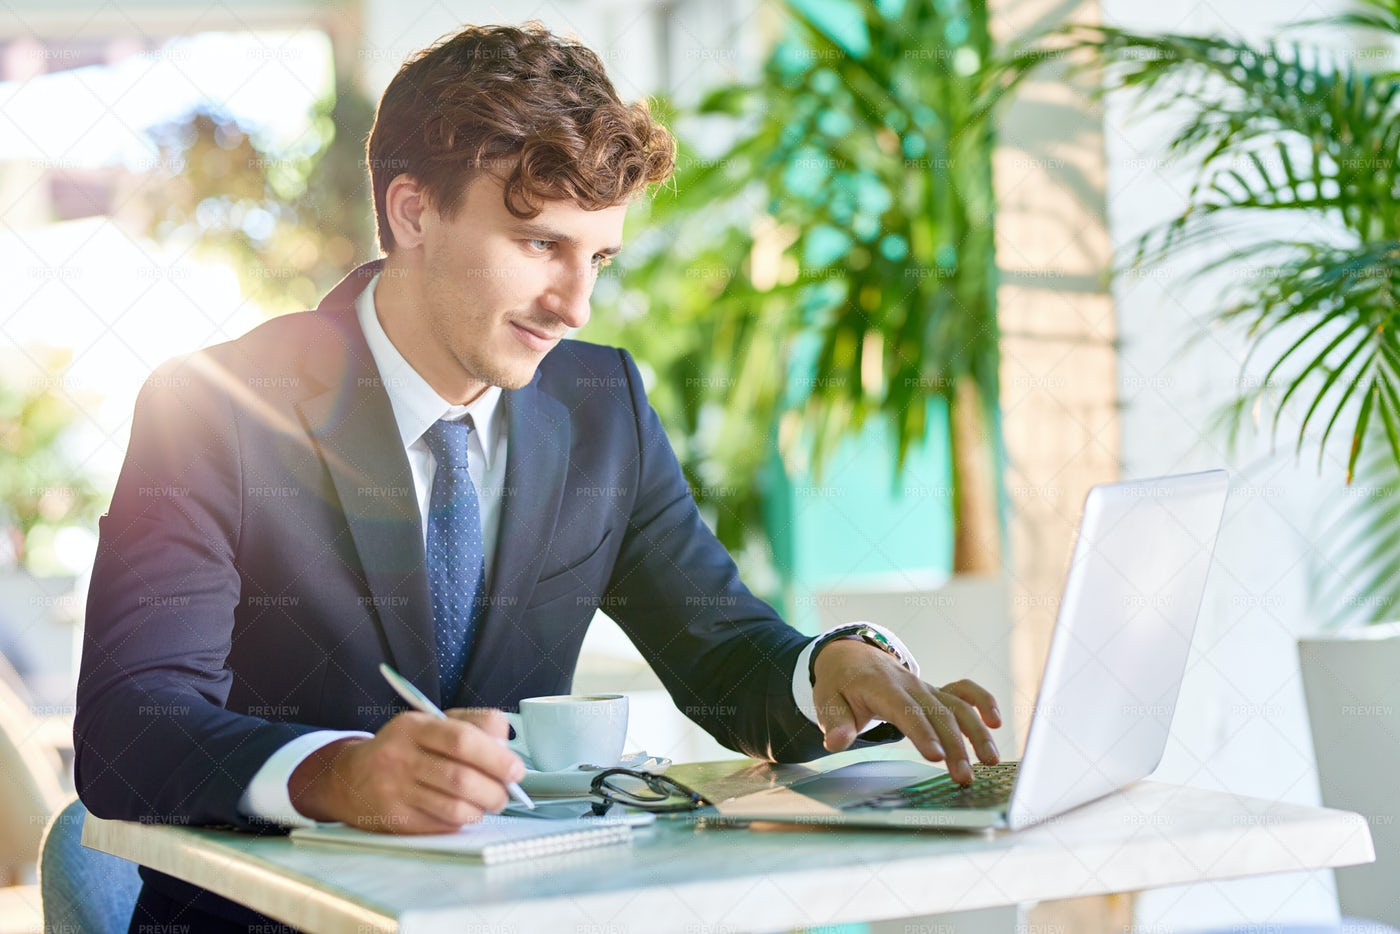 Handsome Businessman Working At...: Stock Photos